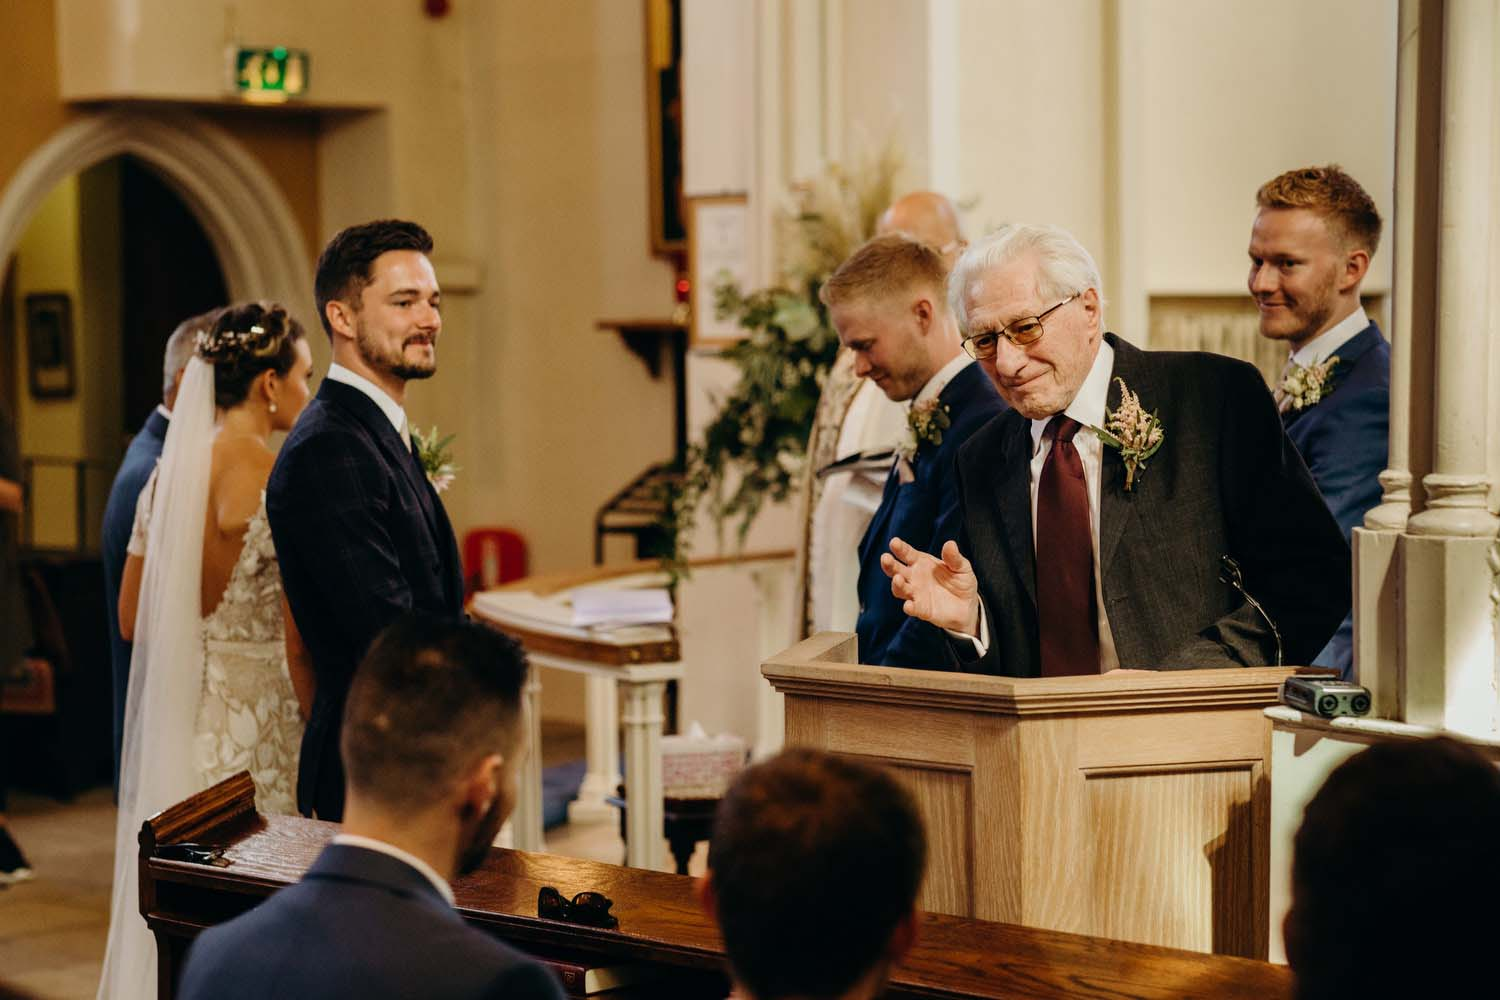 Grandfather of groom does church reading